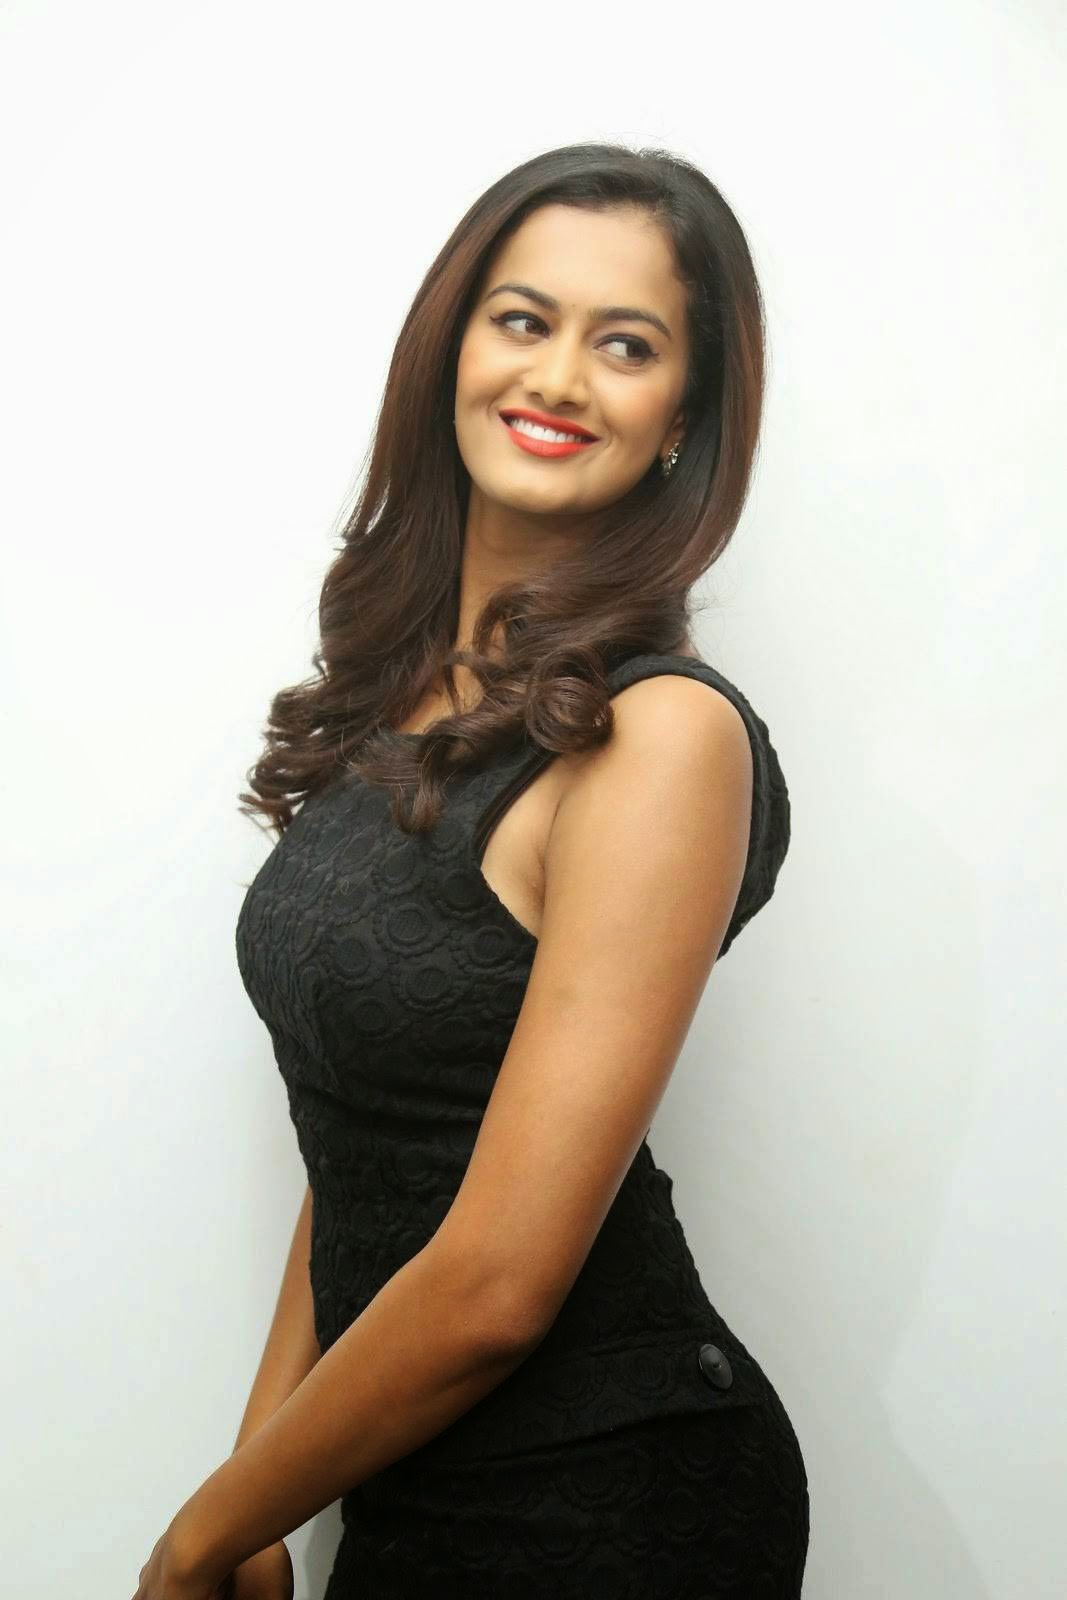 Shubra Aiyappa Wallpapers, Shubra Aiyappa Sexy Hot Figure images in Black Dress